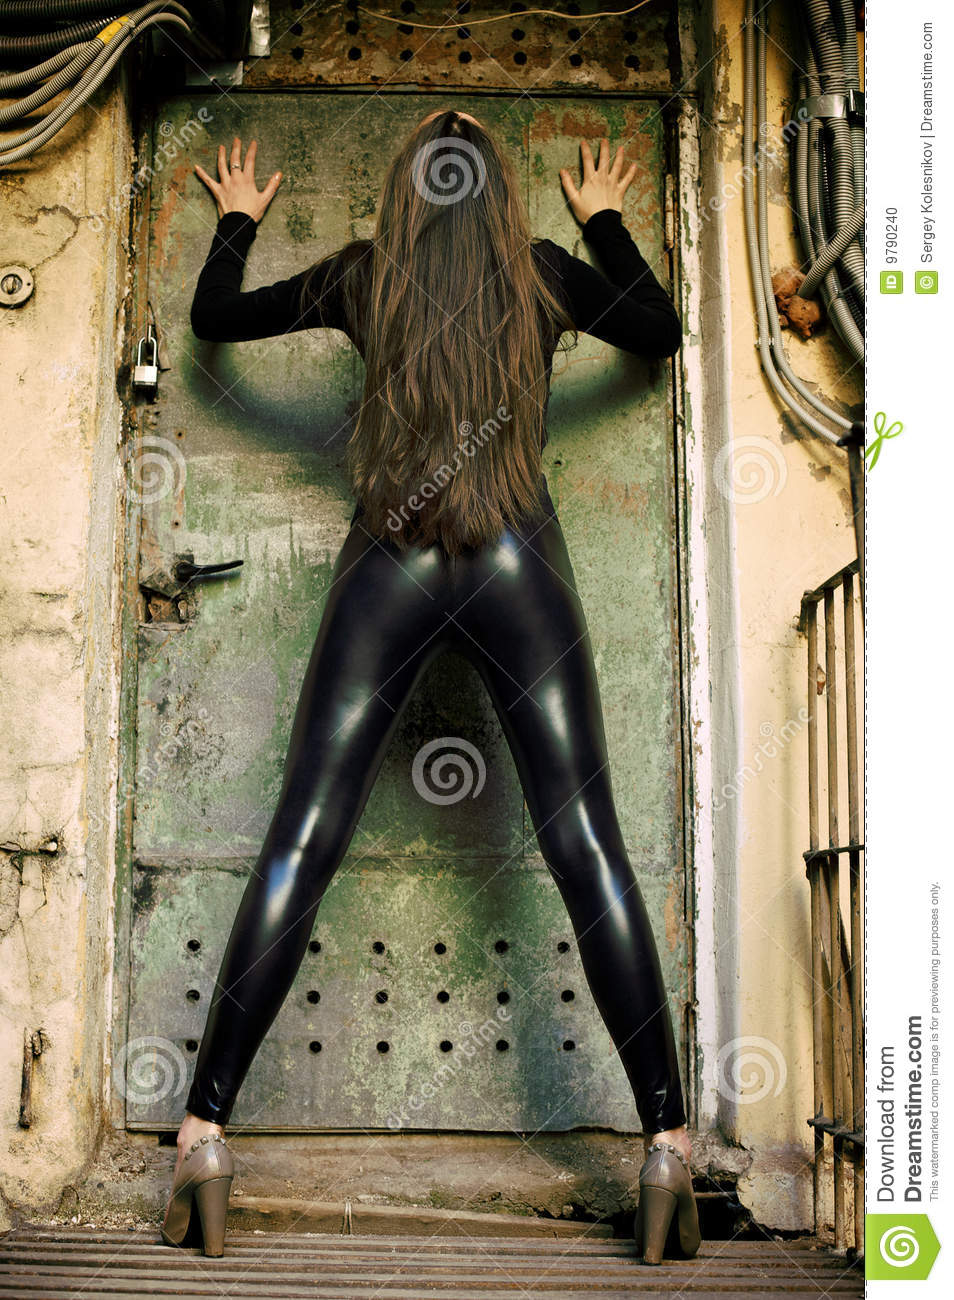 Rusty Door young female model standing before rusty door stock photo - image